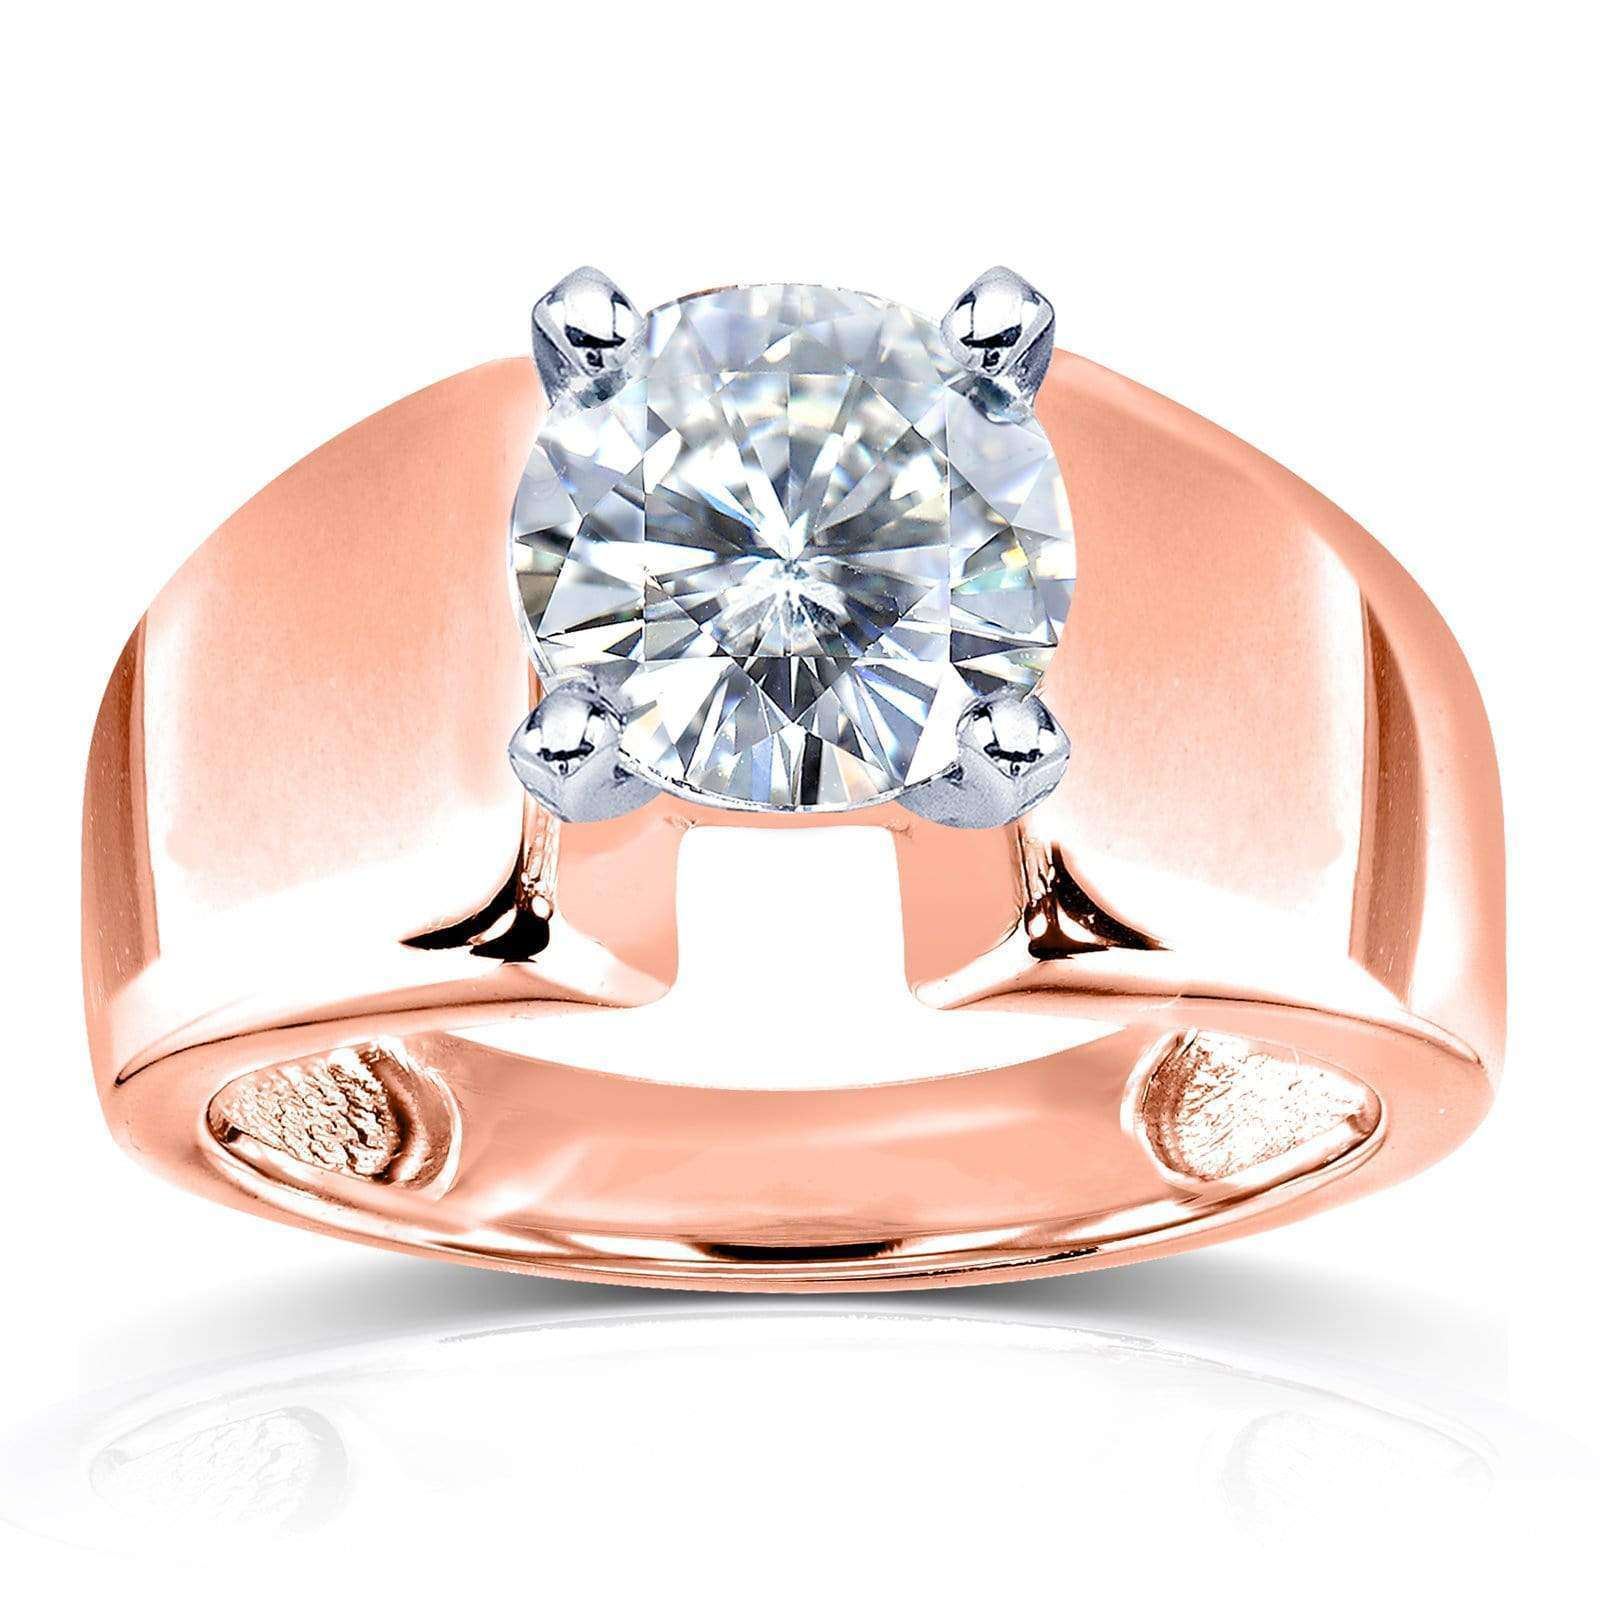 Discounts Wide Shank Round Brilliant Moissanite Solitaire Engagement Ring 1 9/10 Carat 14k Rose Gold (FG/VS) - 10.5